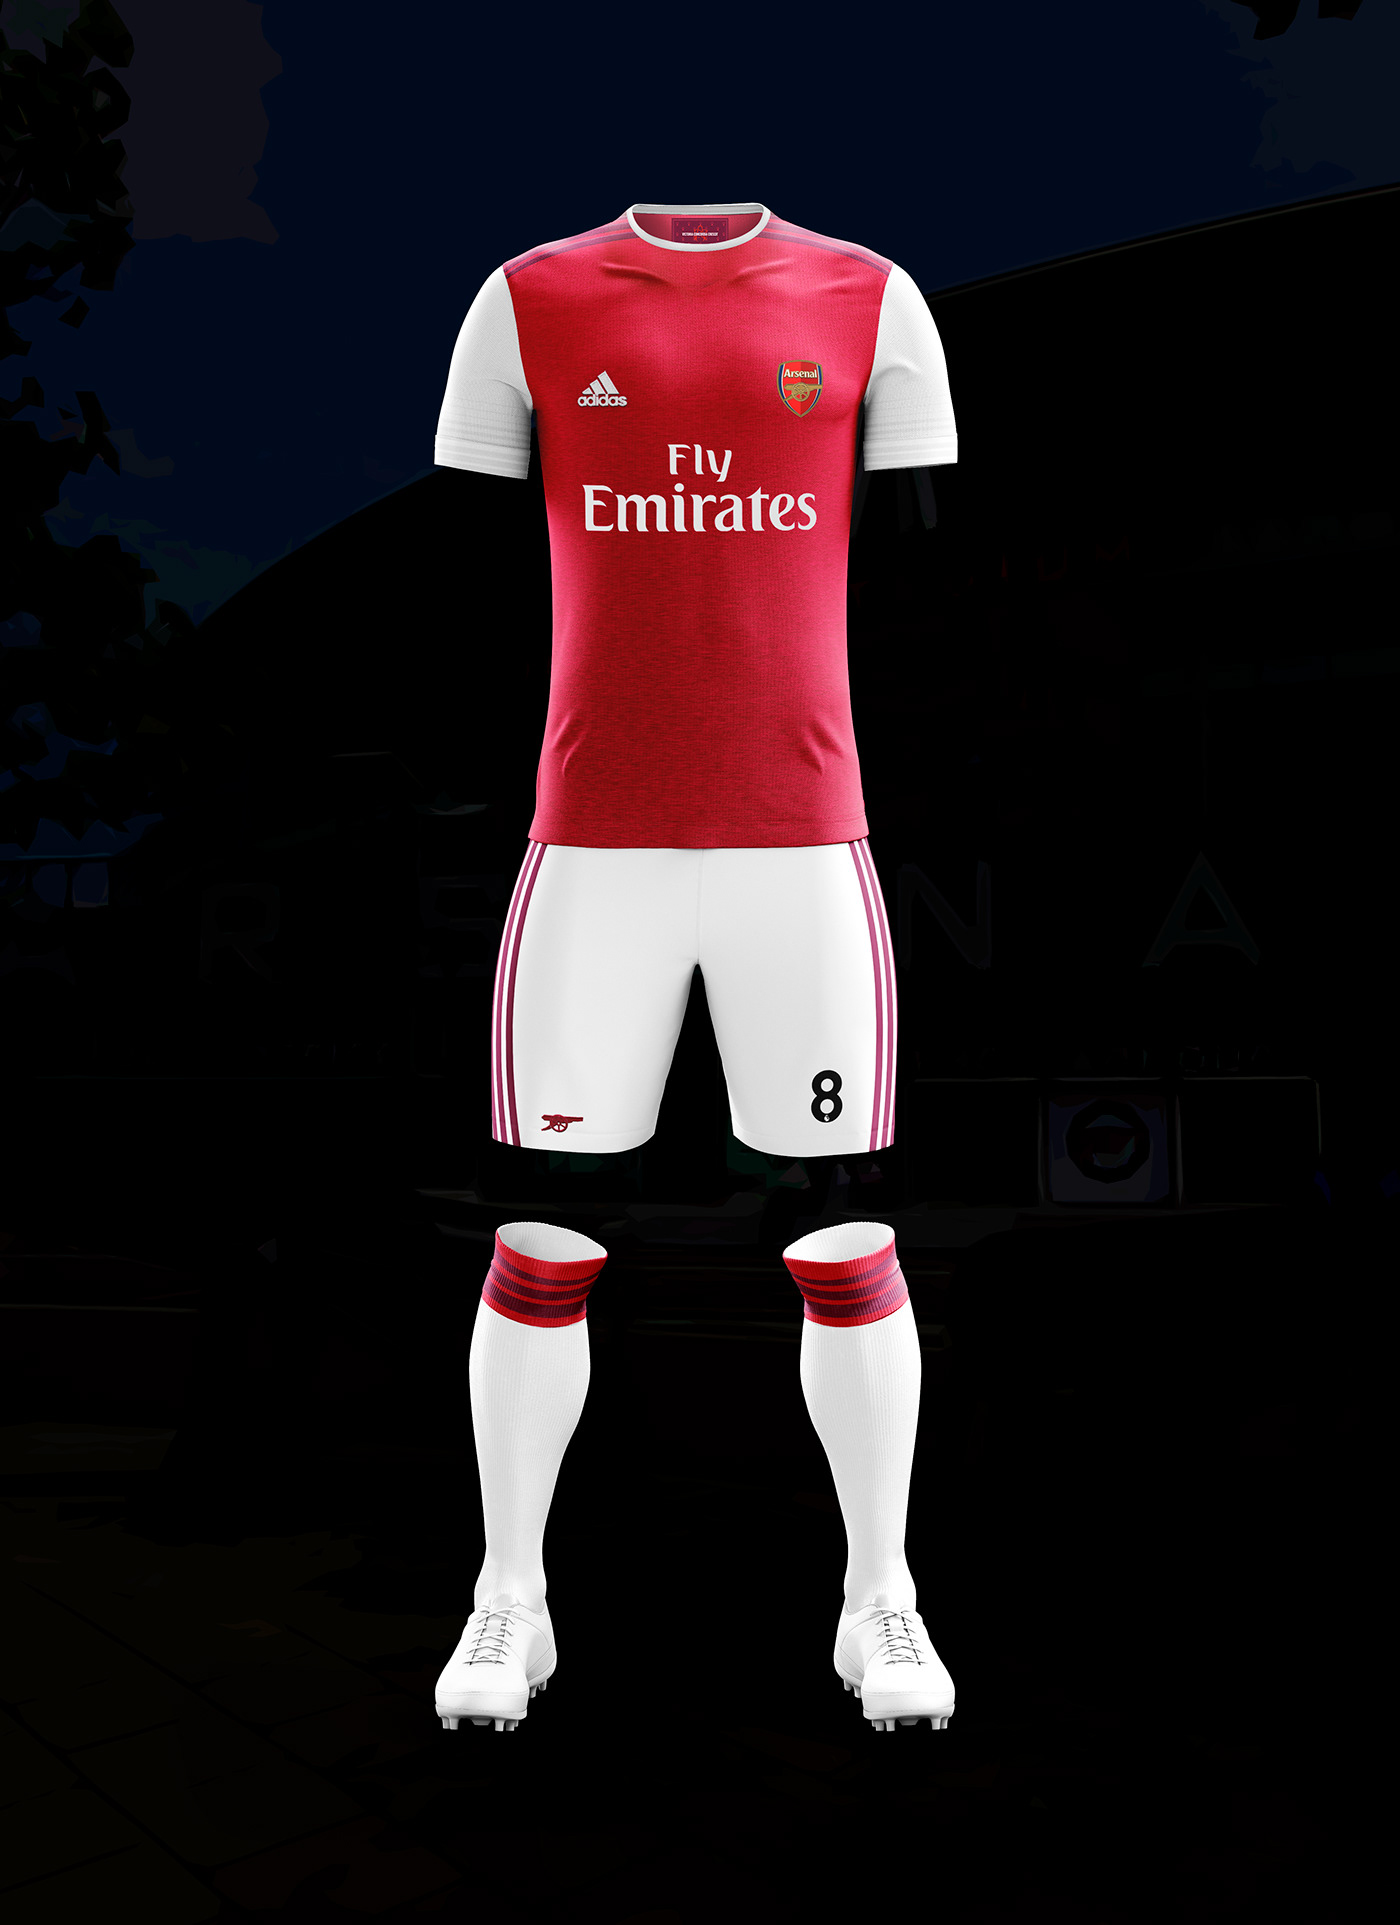 Arsenal x Adidas  Concept Kits 2019-20. Mark White •. Follow Following  Unfollow. Save to Collection ed69b82f0